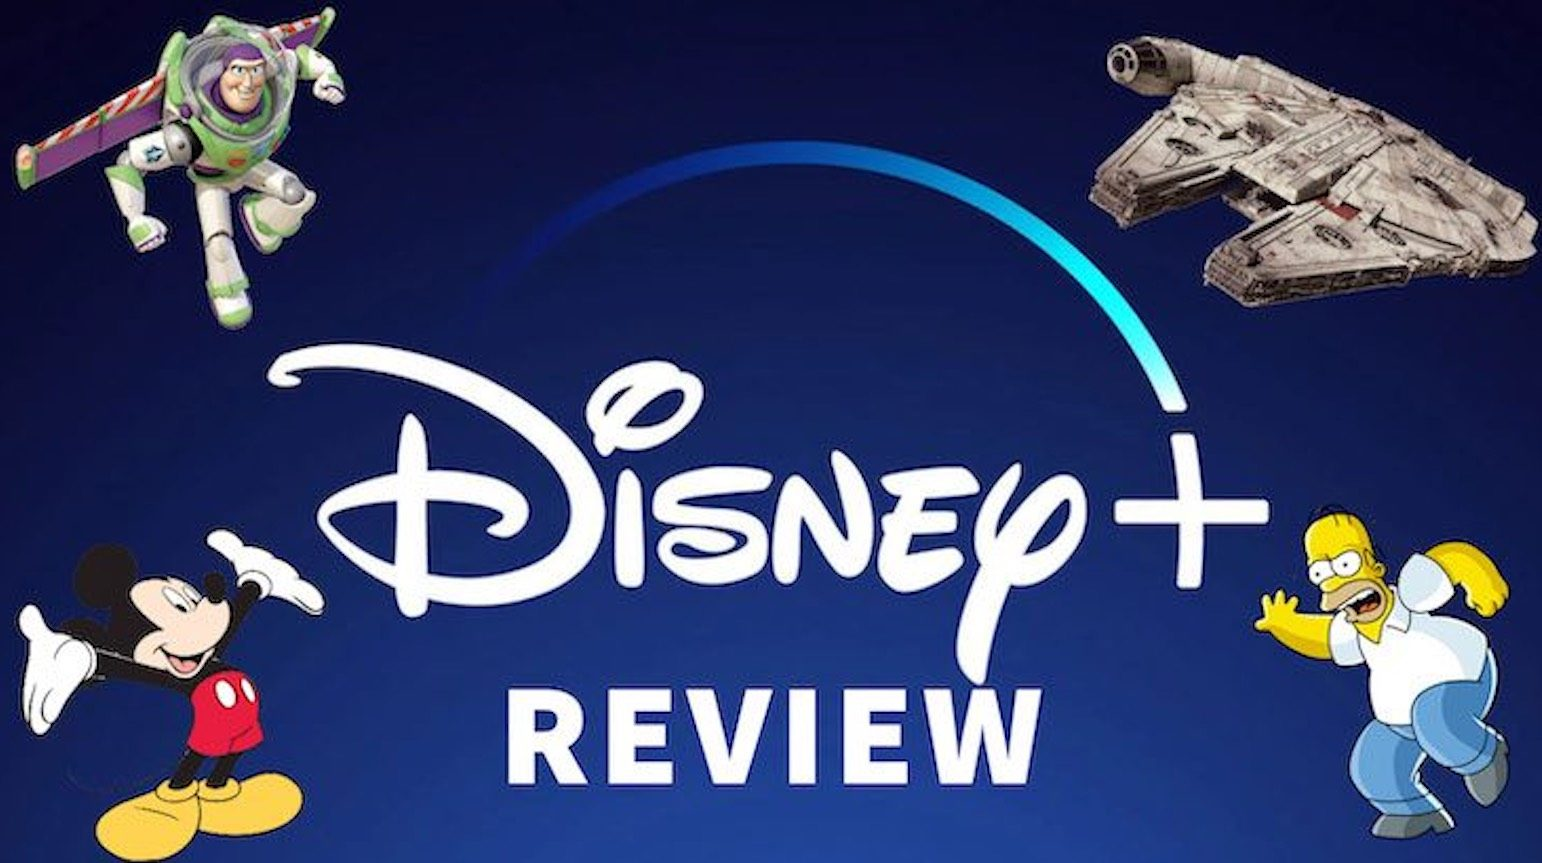 Buzz Lightyear, Mickey Mouse, Homer Simpson, Star Wars ship, Disney+ logo and review